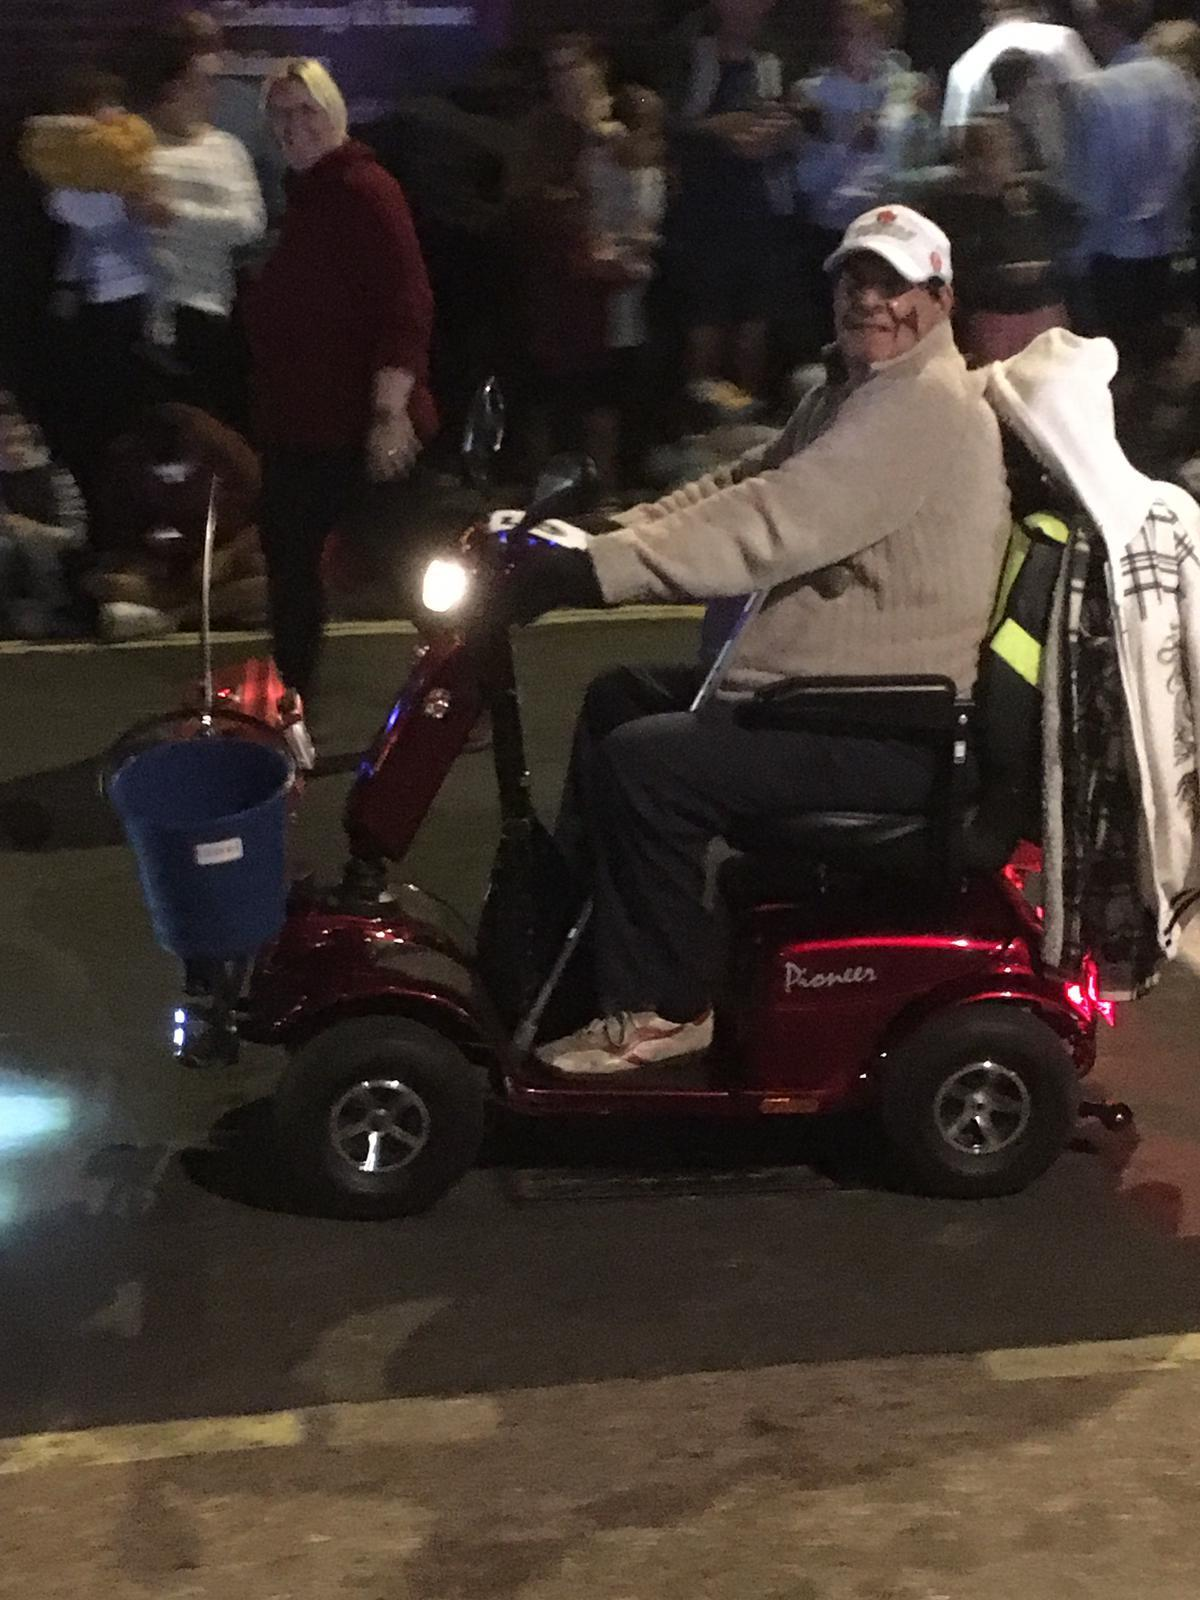 Terminally ill man 'pimps up' scooter with the latest gadgets